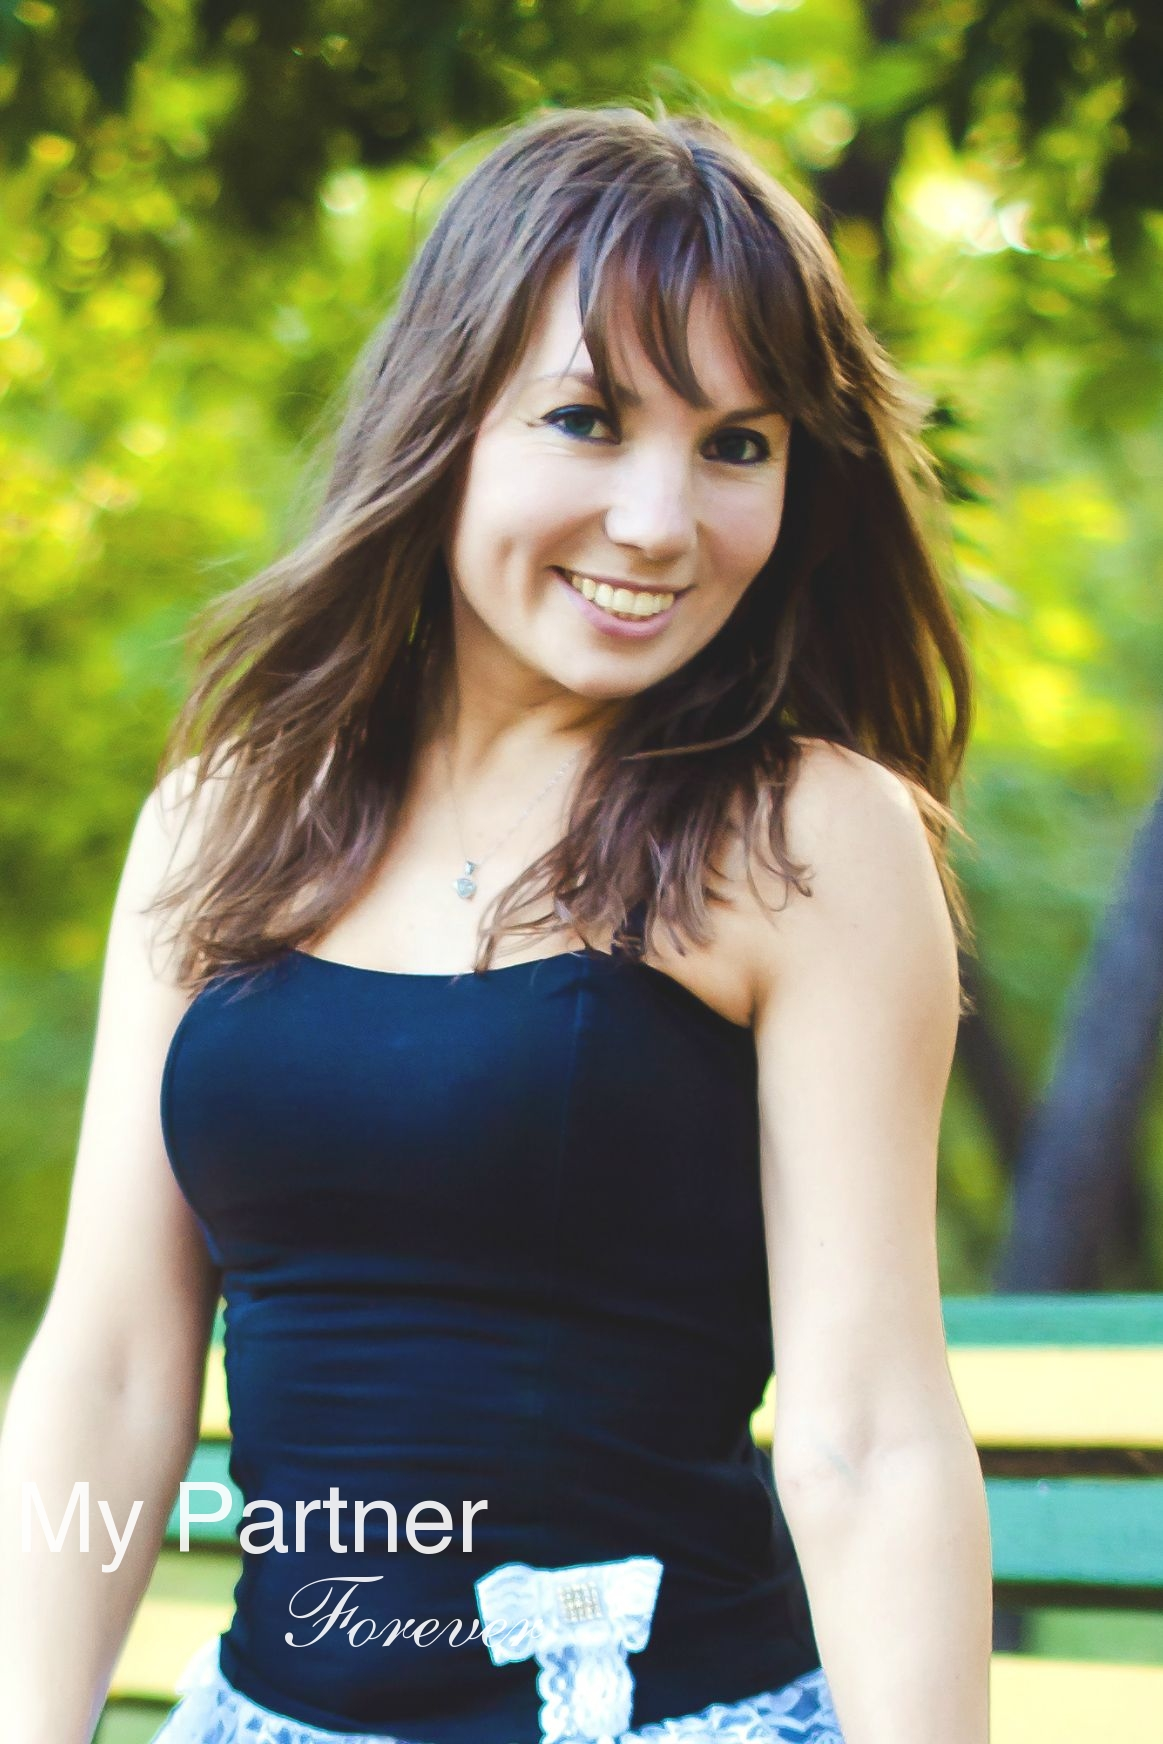 Charming Lady from Ukraine - Tatiyana from Mariupol, Ukraine